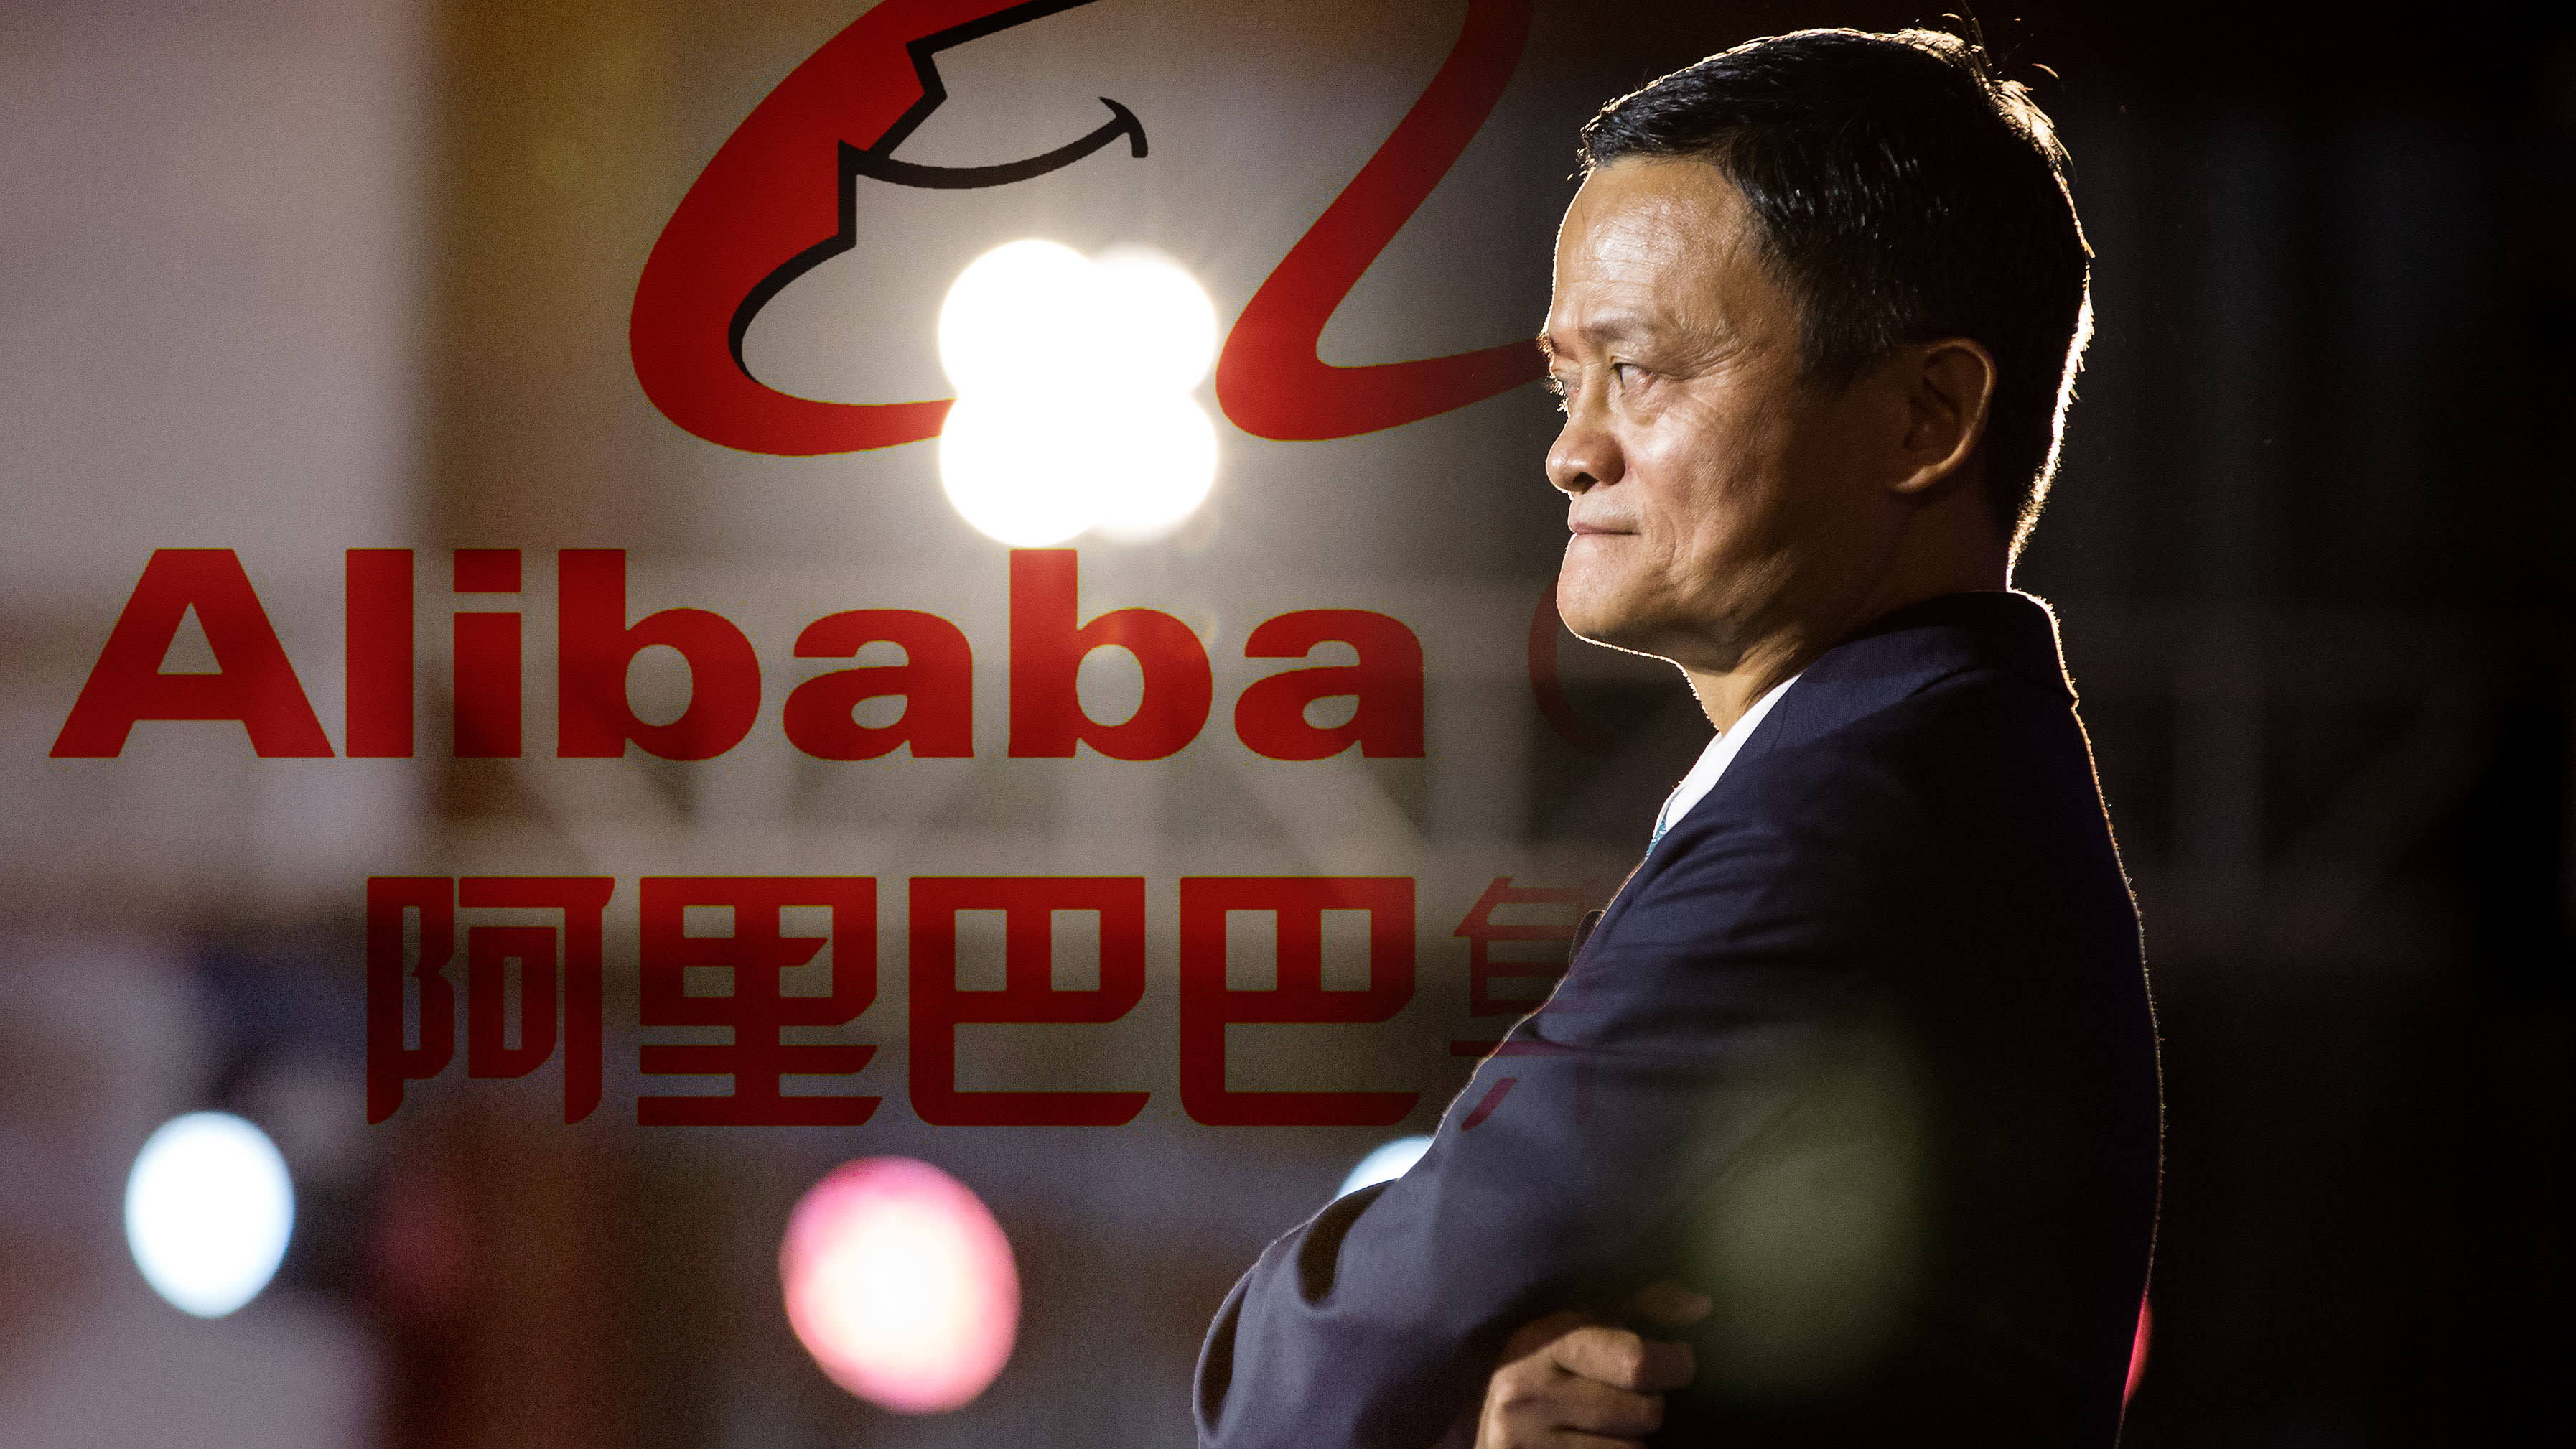 Jack Ma S Alibaba And Ant Targeted By China Regulators Nikkei Asia Can find all kinds of professional suppliers. jack ma s alibaba and ant targeted by china regulators